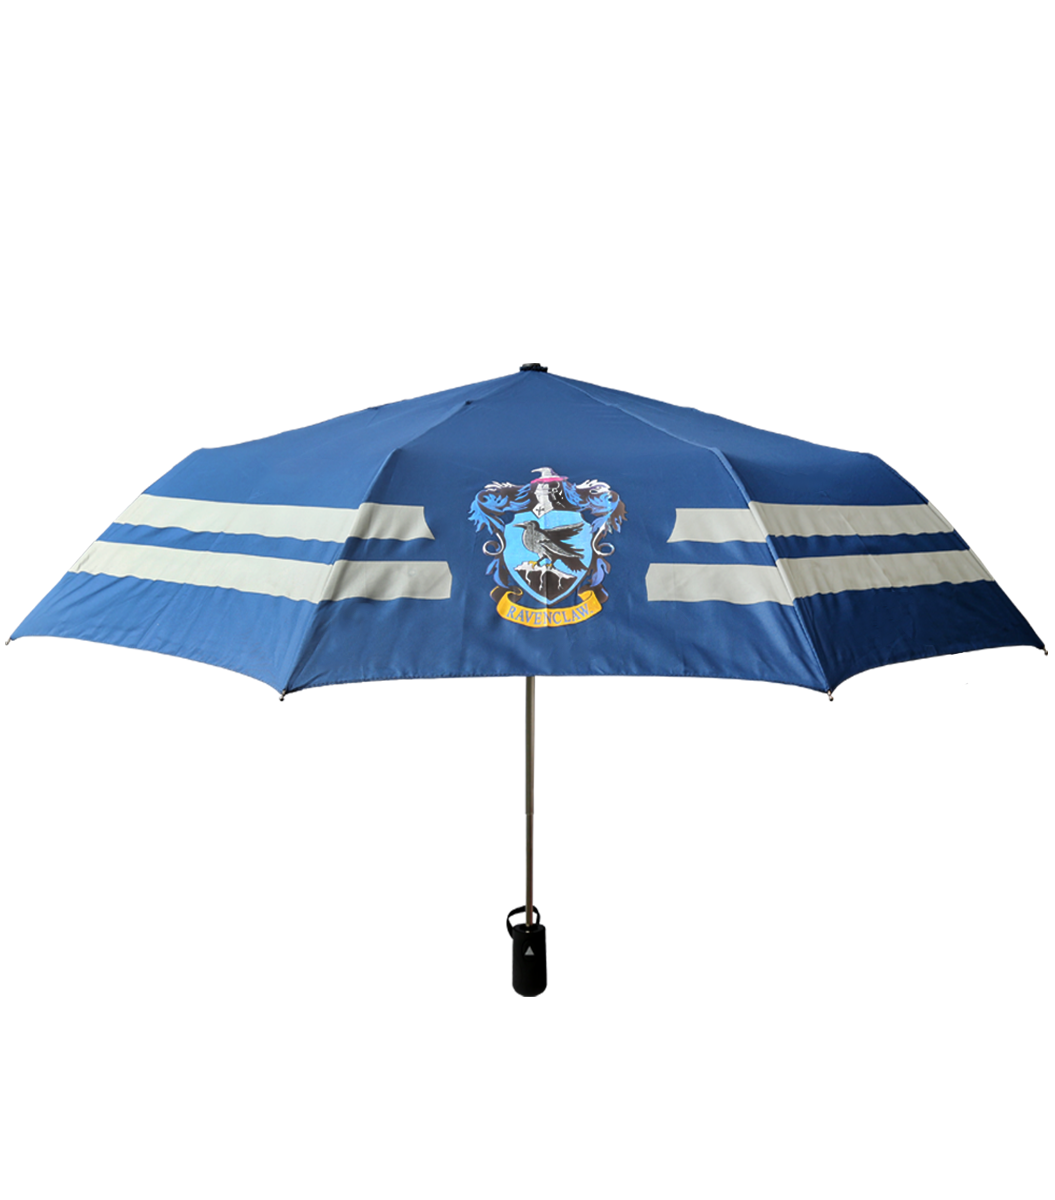 https://cdn.shopify.com/s/files/1/0221/1146/products/Ravenclaw_Umbrella.png?v=1507720921